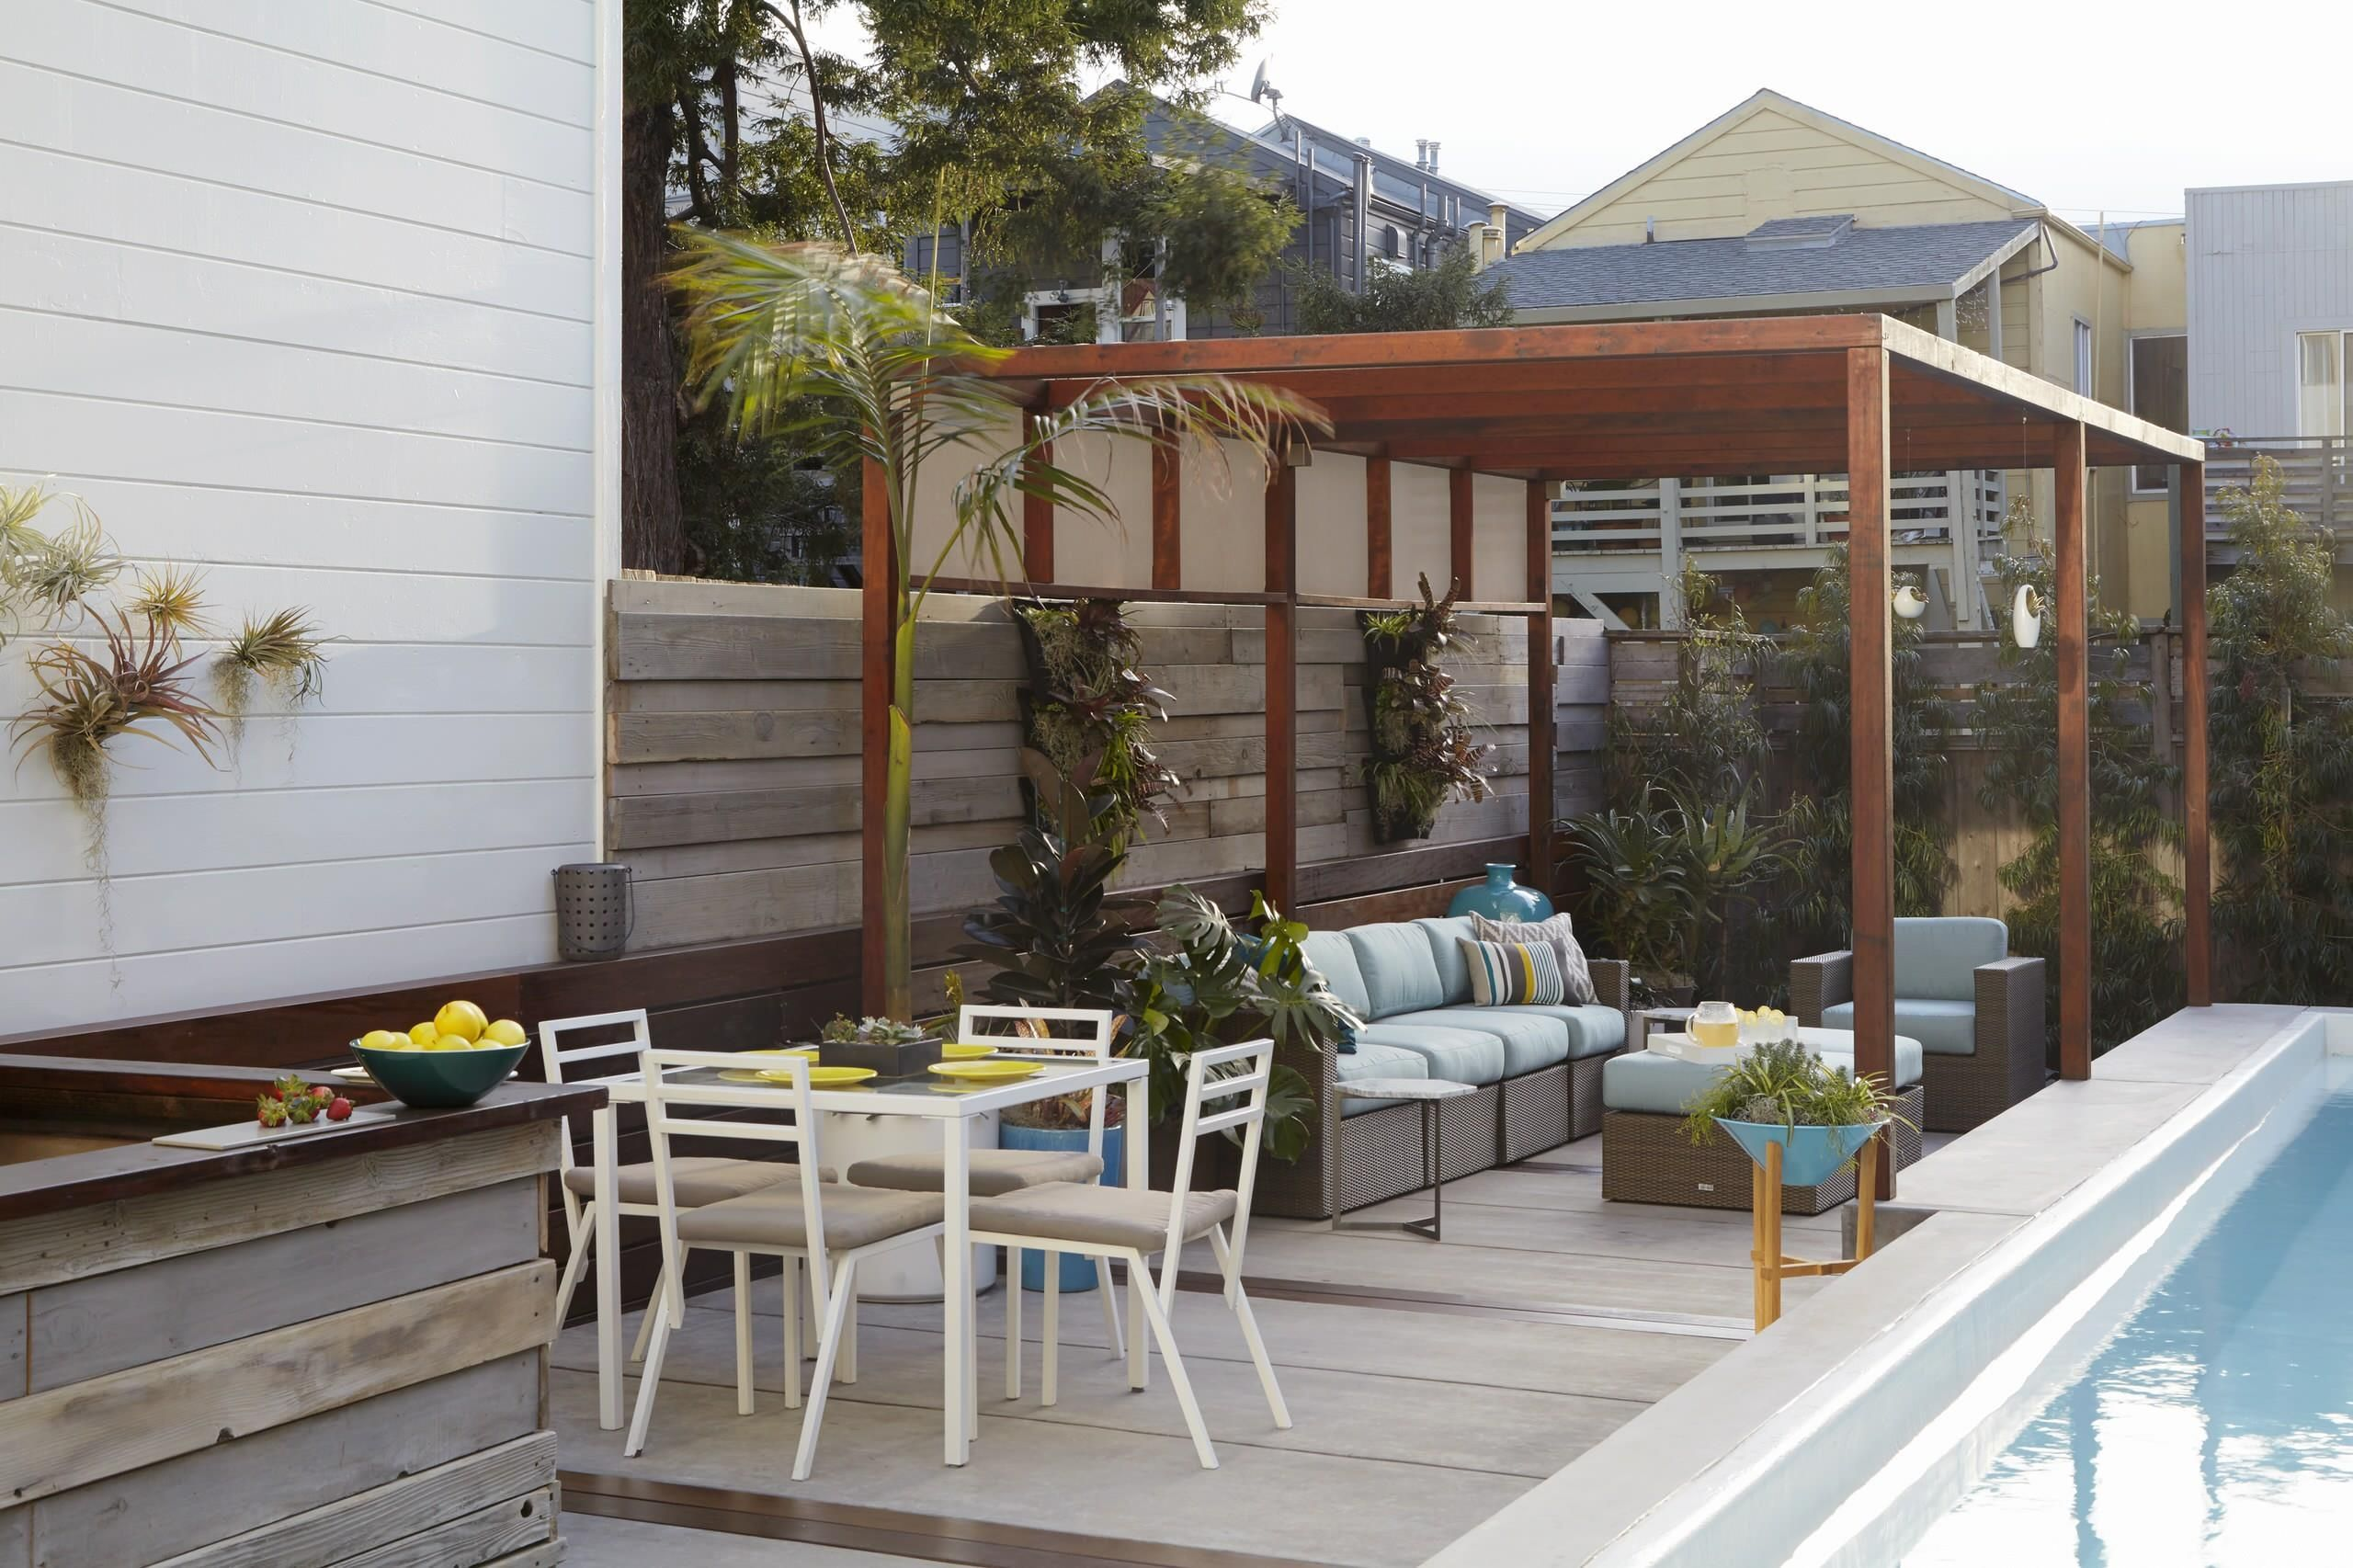 Do it yourself patio design ideas and features patios landscaping do it yourself patio design ideas and features solutioingenieria Image collections